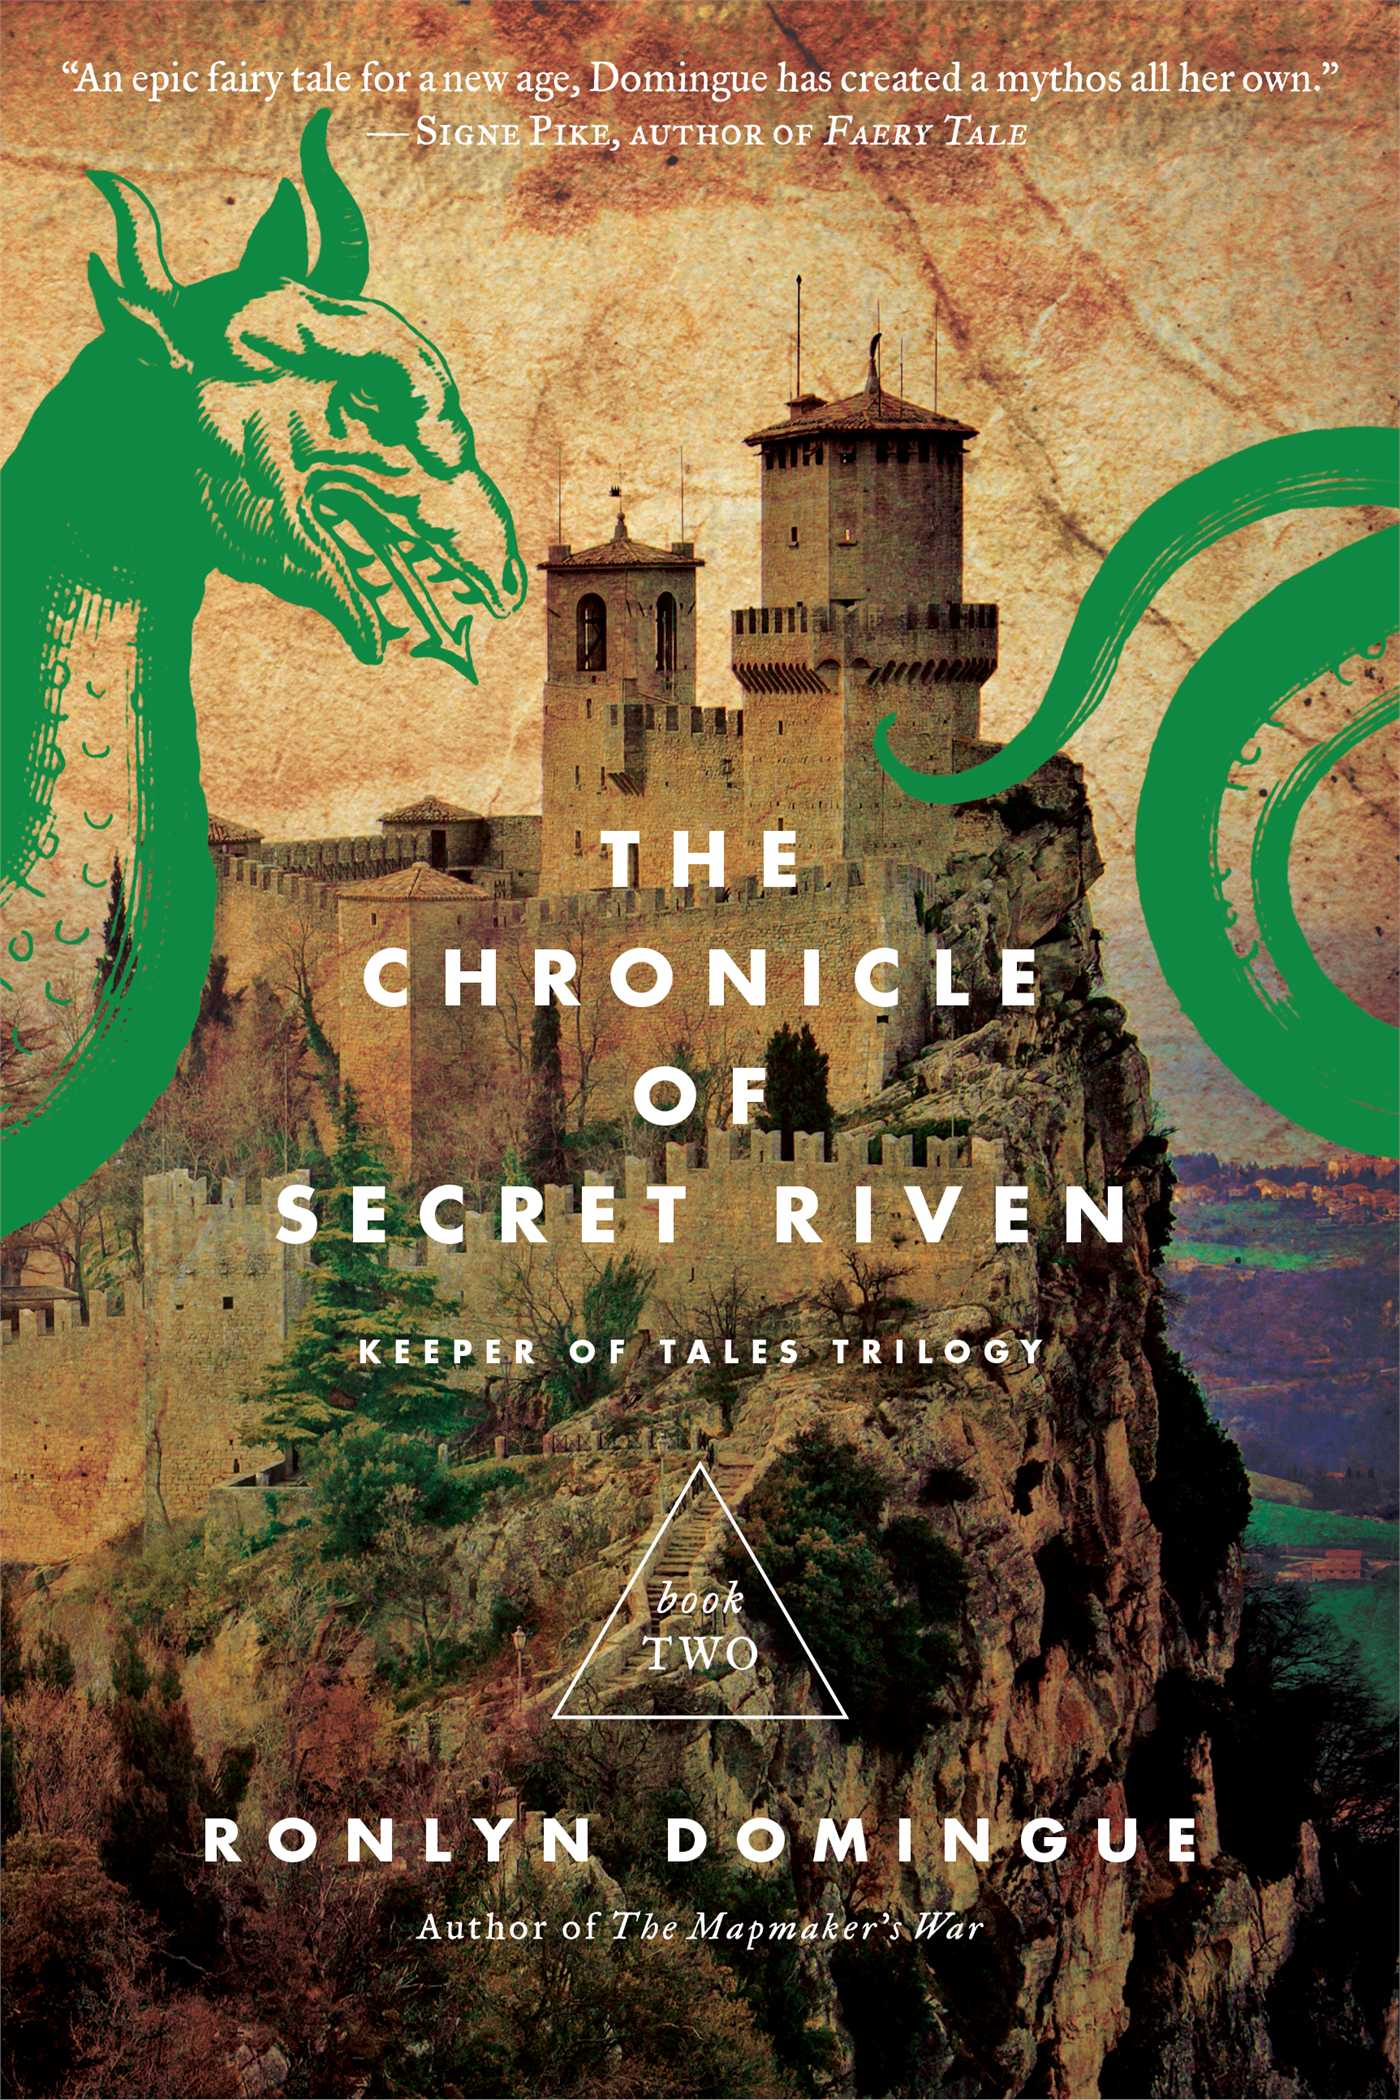 Chronicle-of-secret-riven-9781451688917_hr